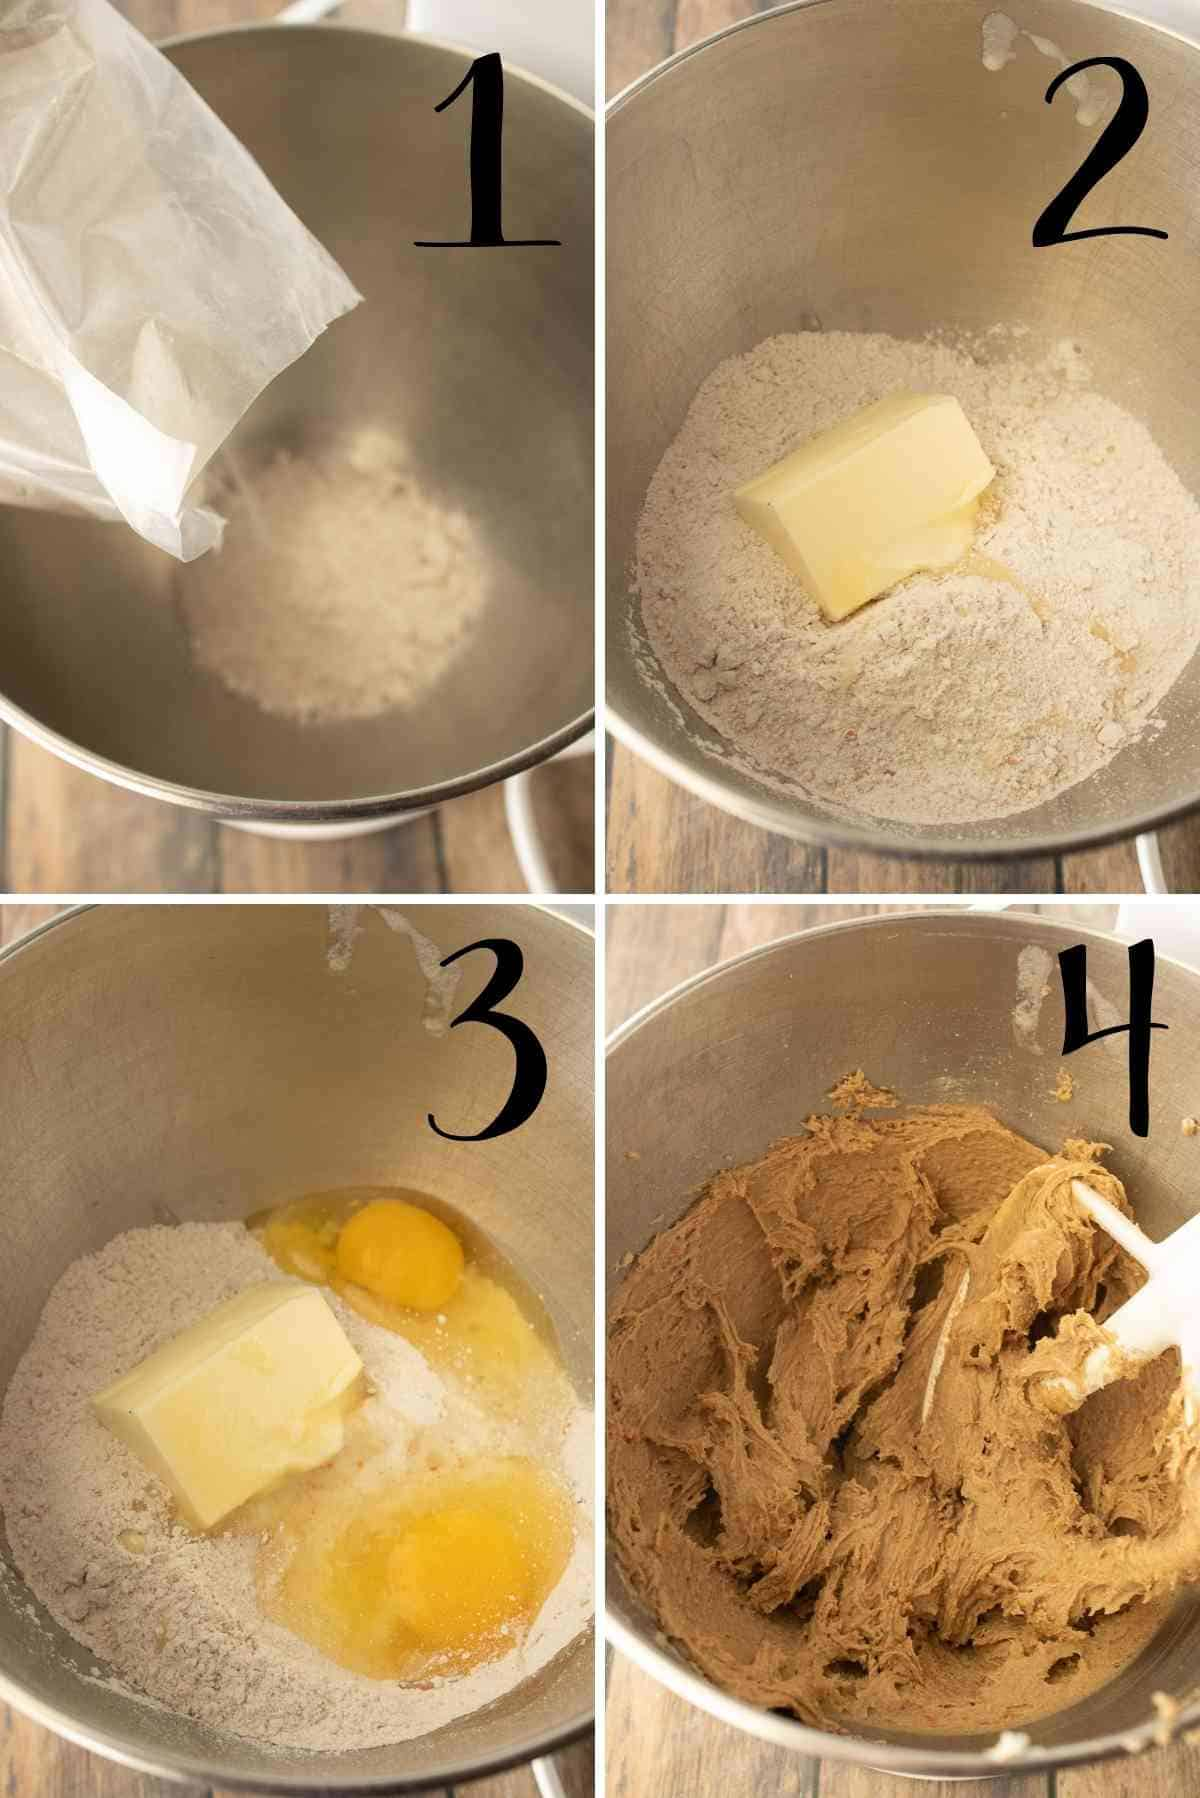 Cake mix, butter and eggs mixed in a mixing bowl.